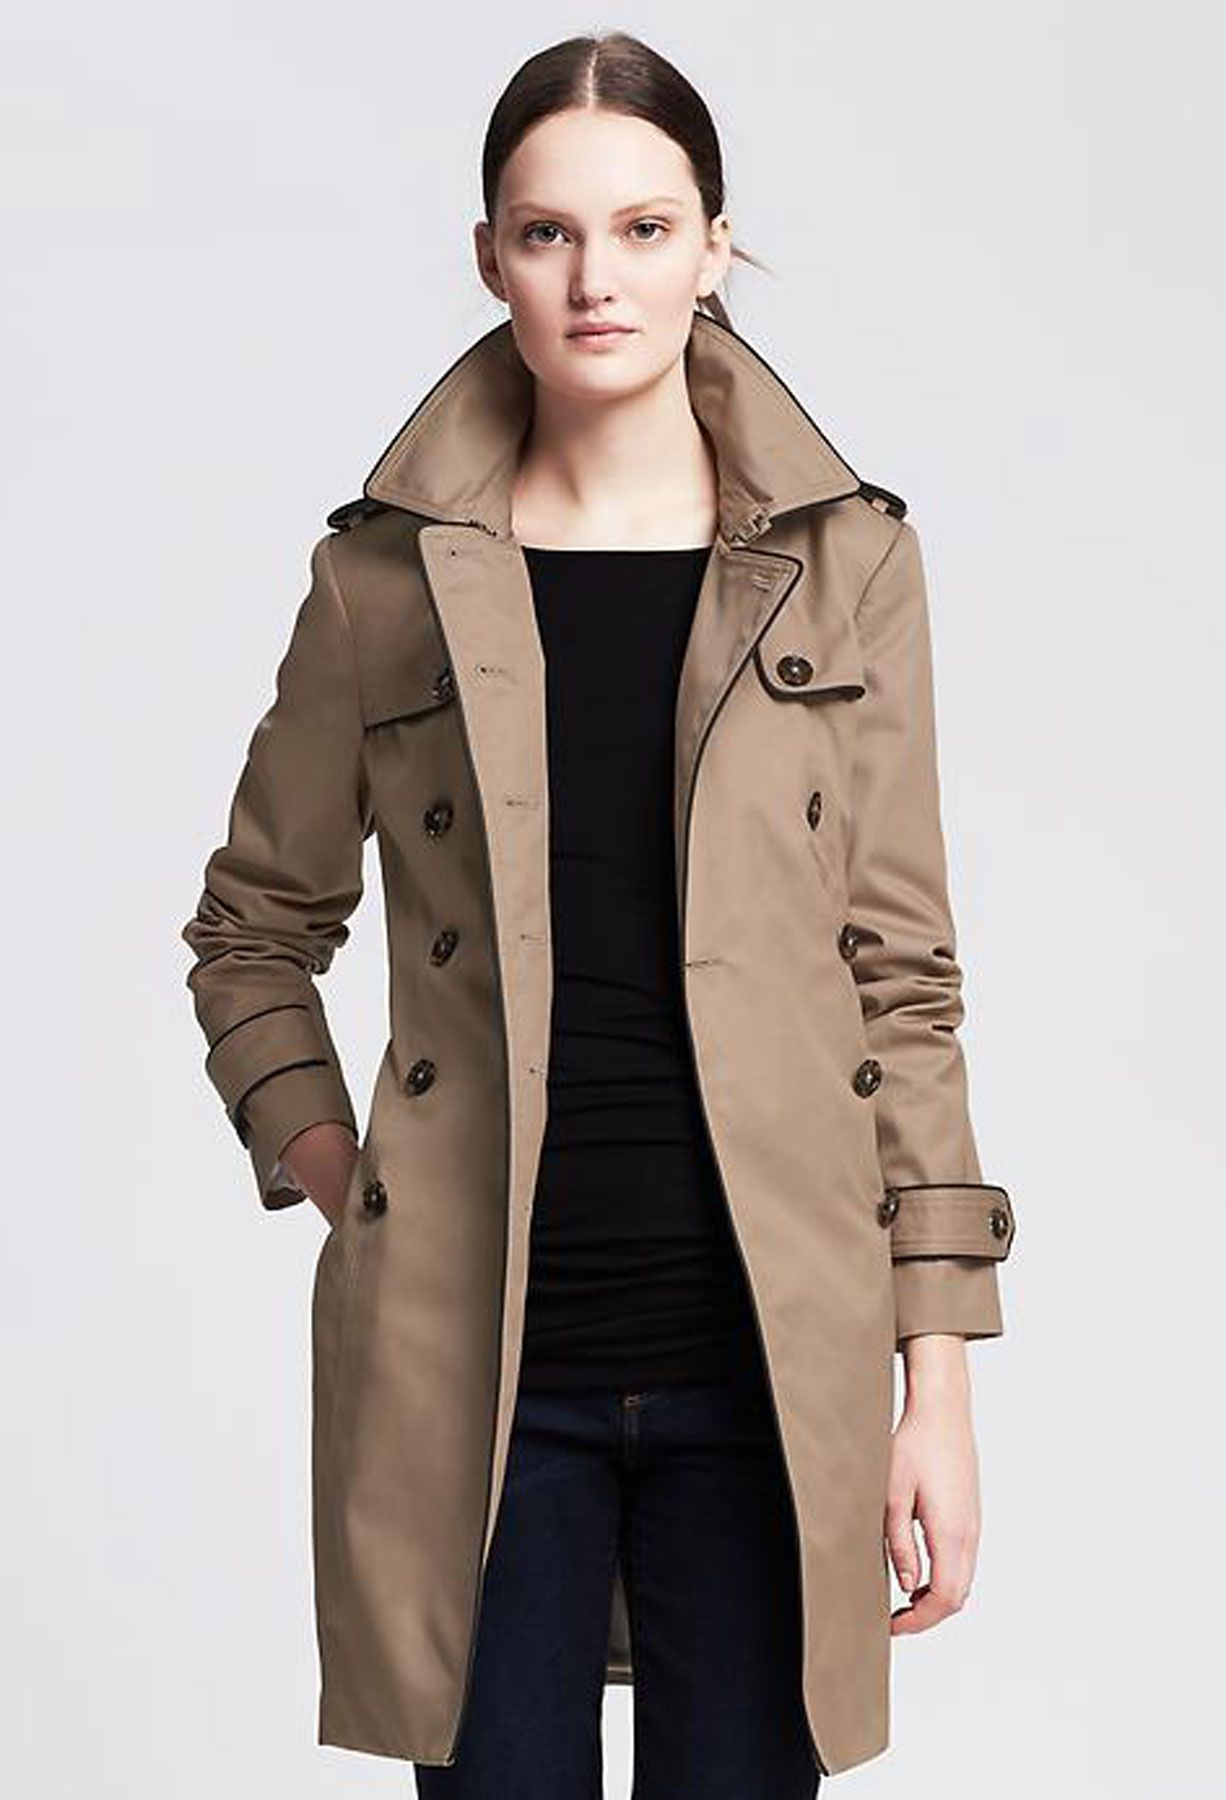 13 Lightweight Trench Coats You Should Wrap Up In This Spring Lightweight Trench Coat Petite Trench Coat Trench Coat [ 1800 x 1226 Pixel ]